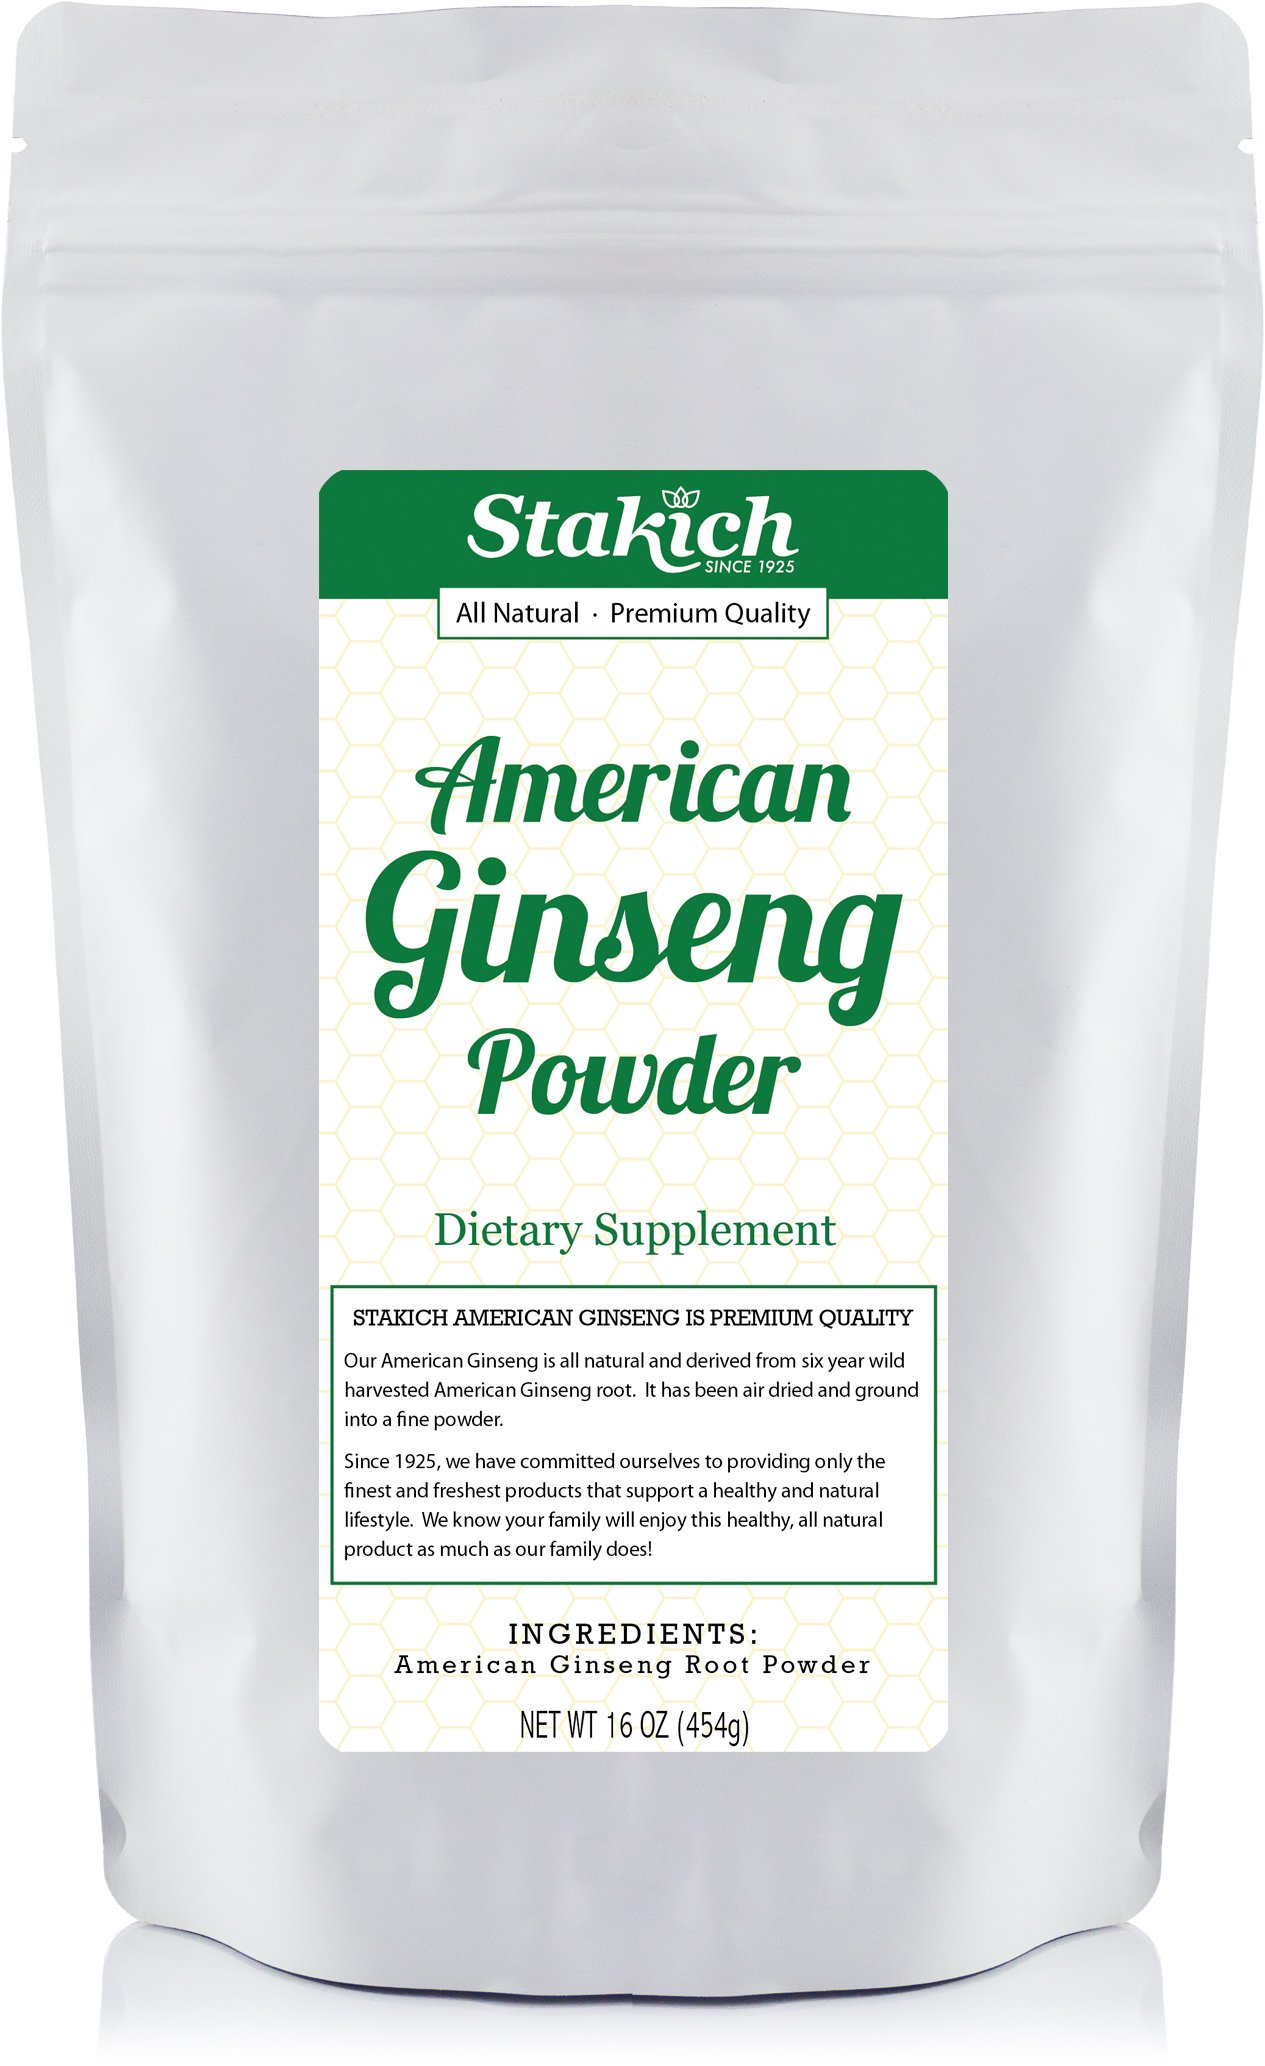 Stakich American GINSENG ROOT POWDER 1 LB - 100% Pure, Premium Quality, High Potency -